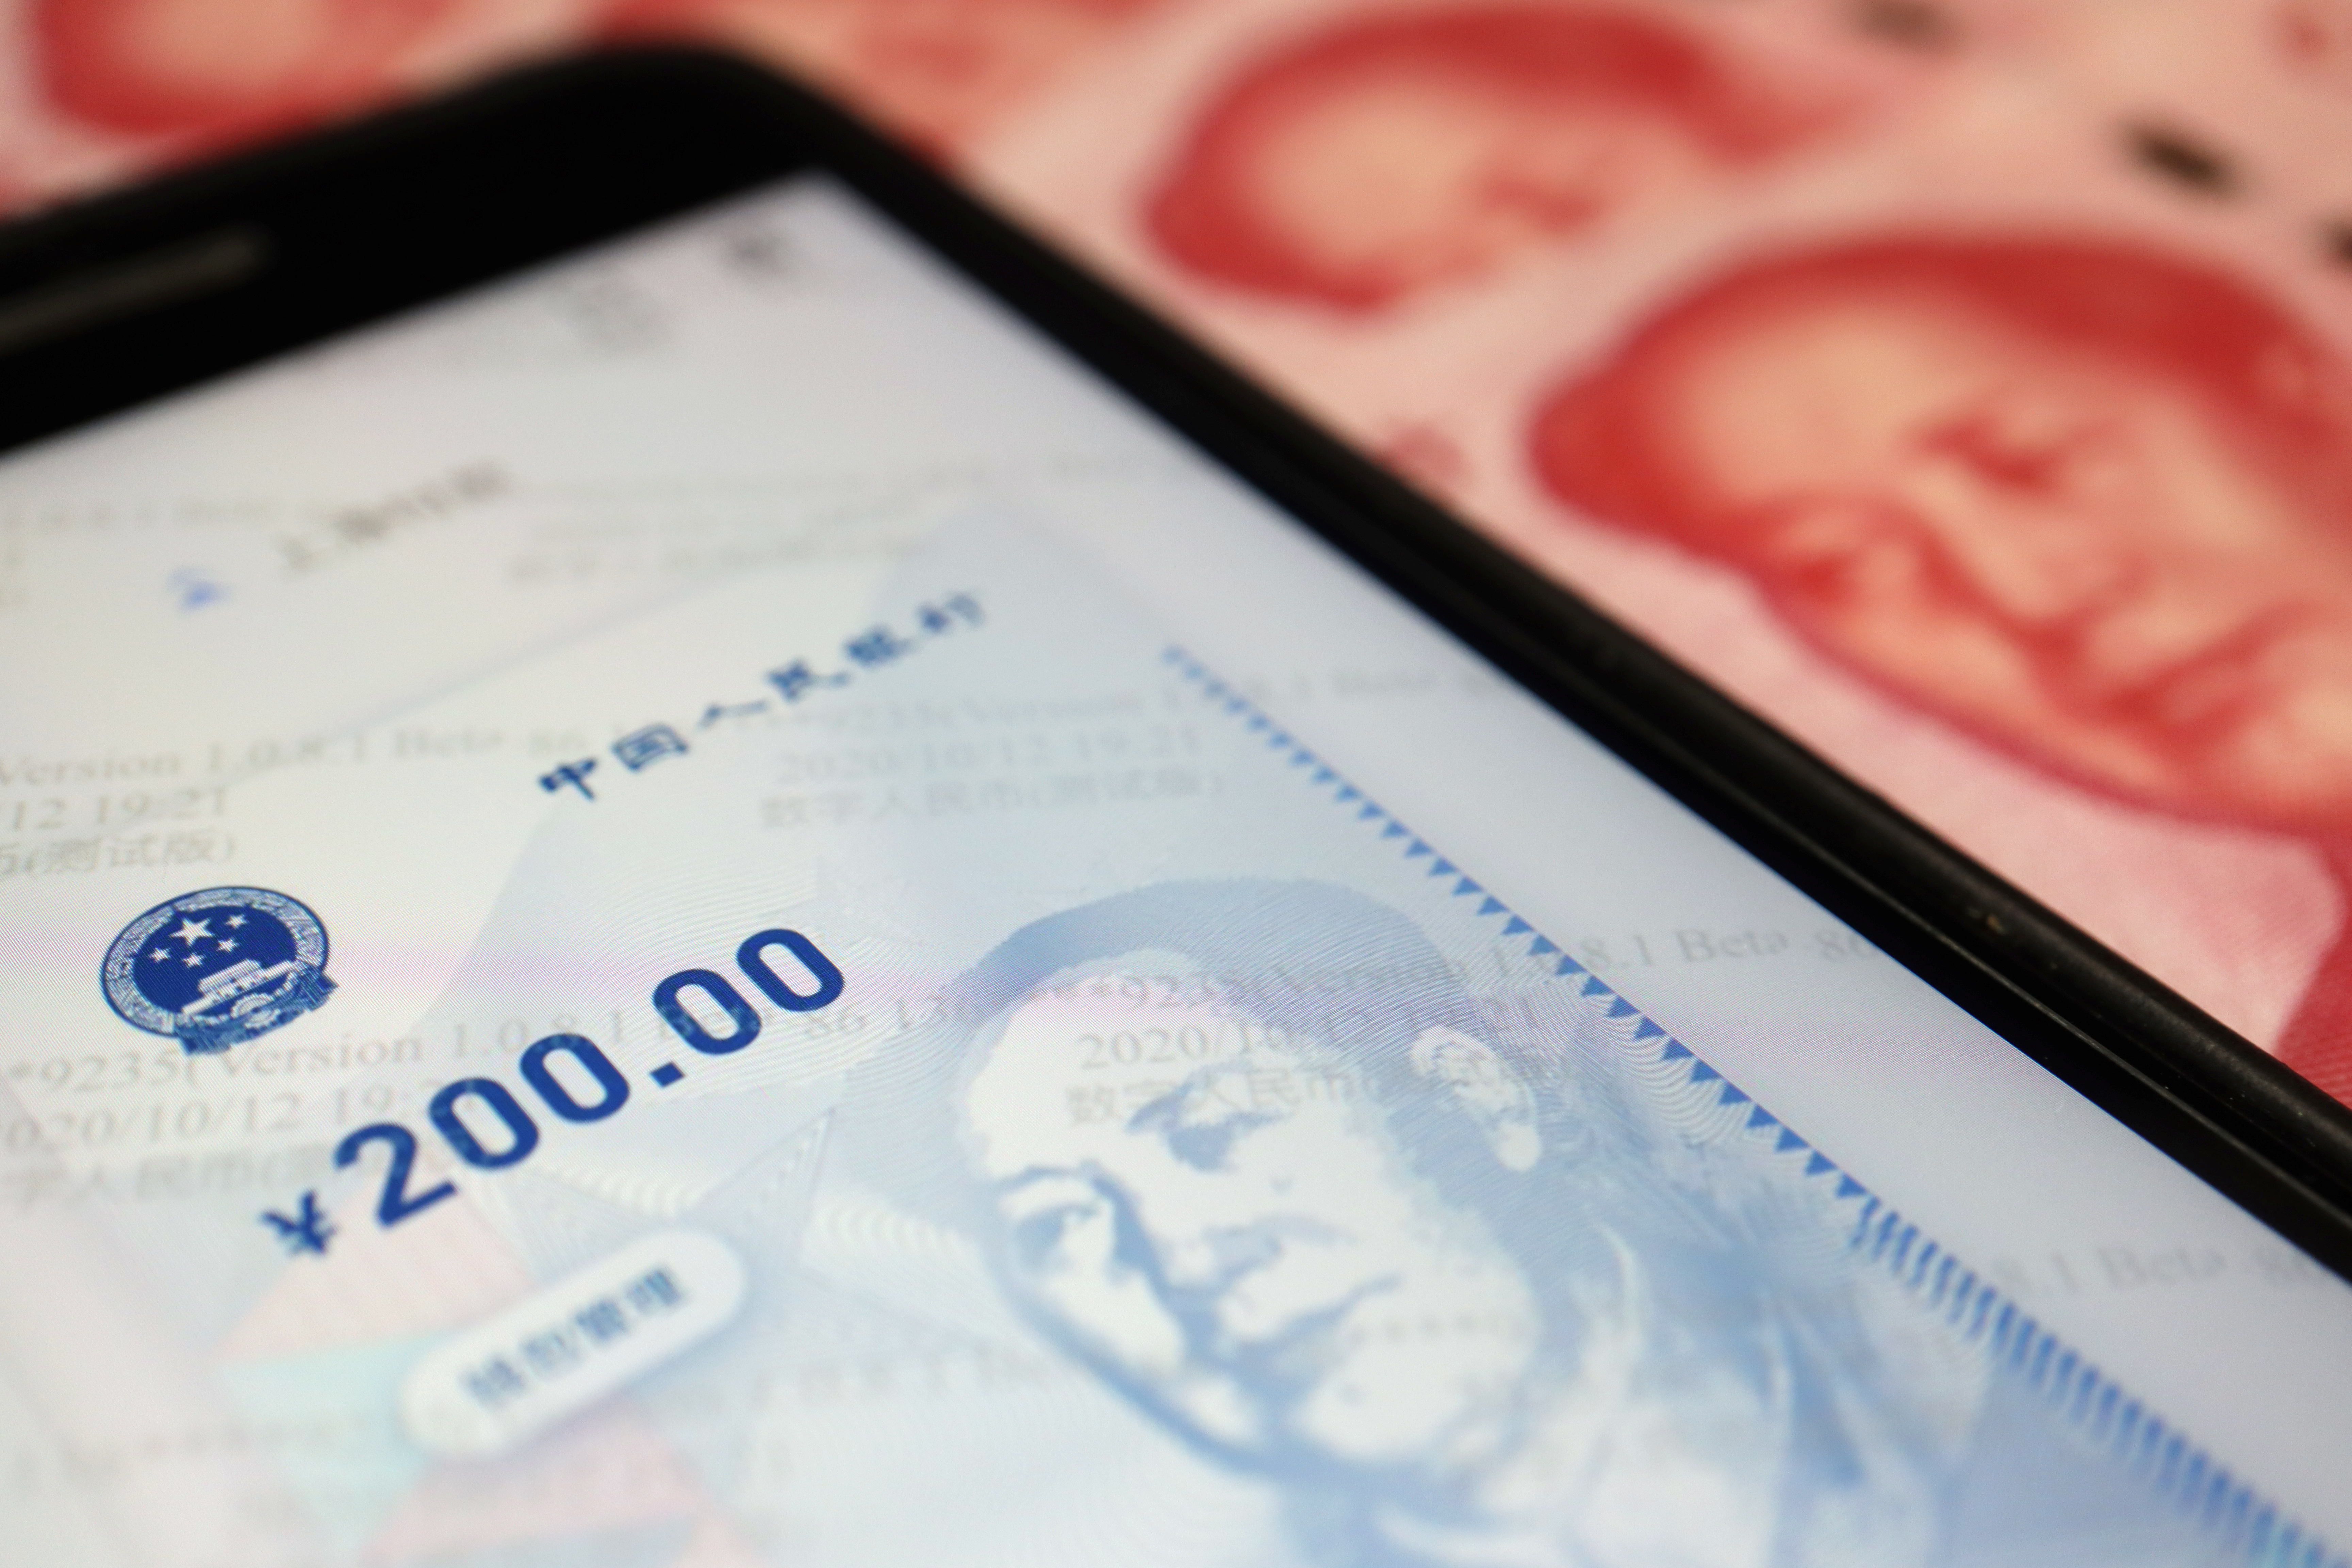 China's official app for digital yuan is seen on a mobile phone next to 100-yuan banknotes in this illustration picture taken October 16, 2020.